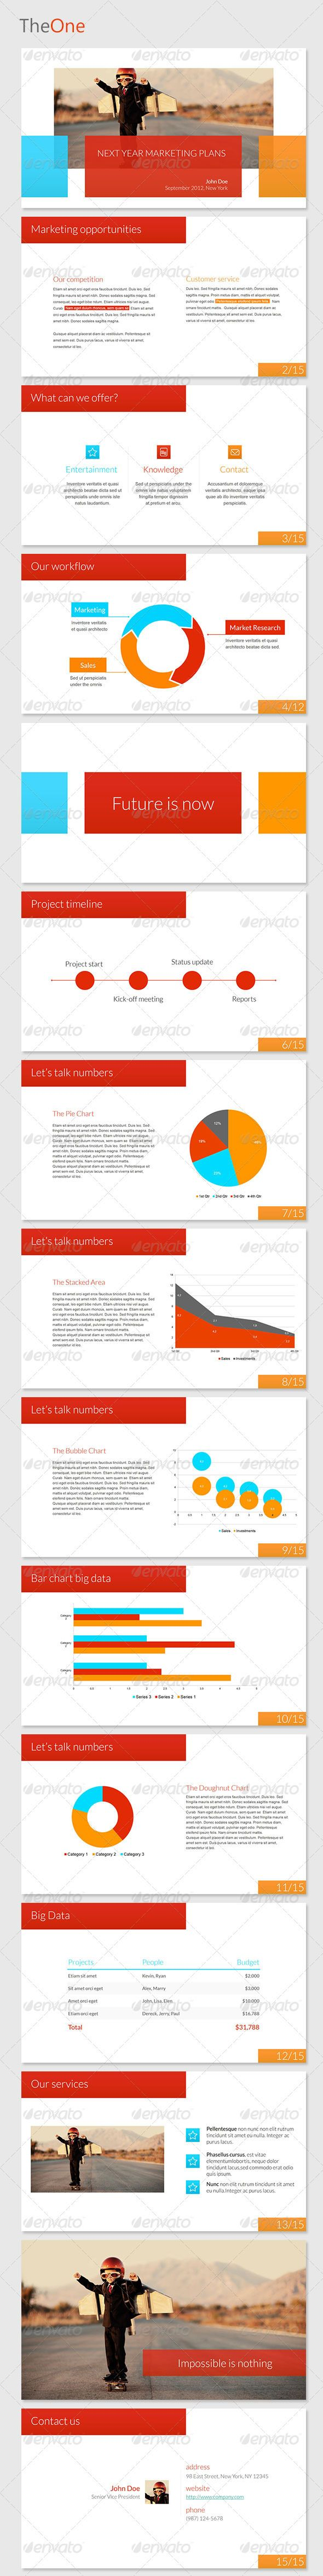 27 best design ideas images on pinterest graph design graphics theone powerpoint template toneelgroepblik Image collections